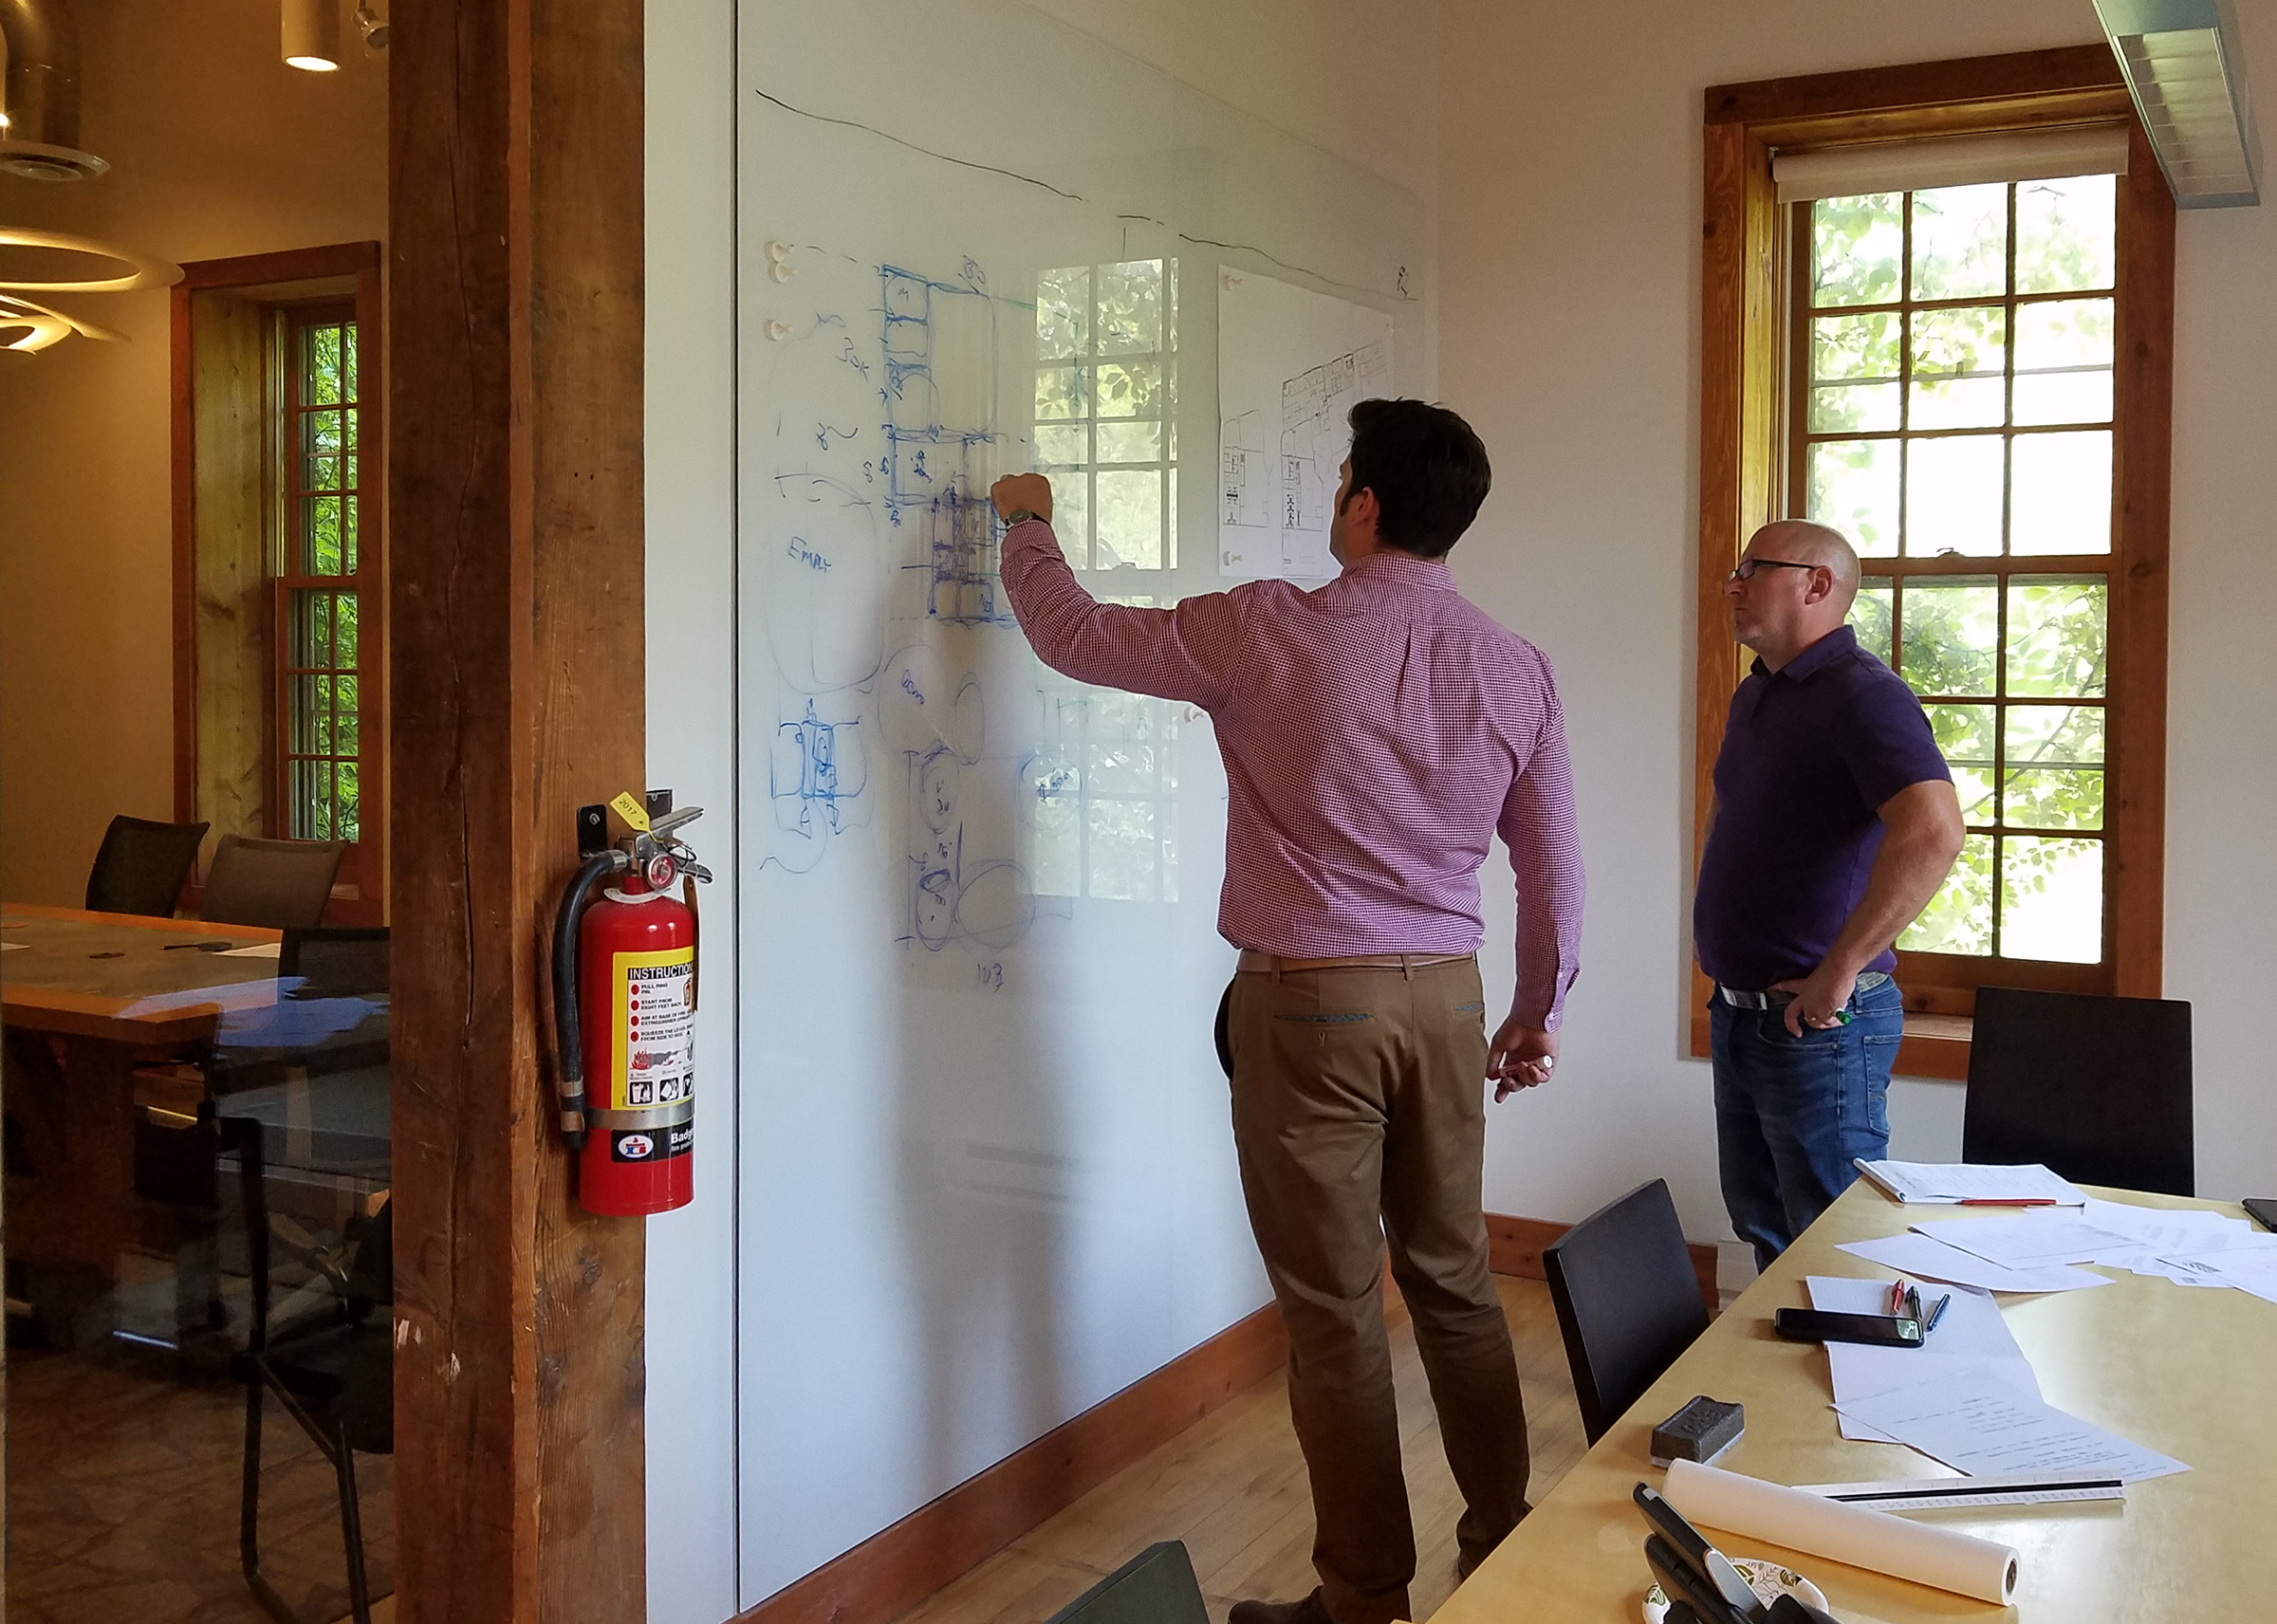 Peter (Director of Design) and Dan (Architect) collaborate to serve our clients.